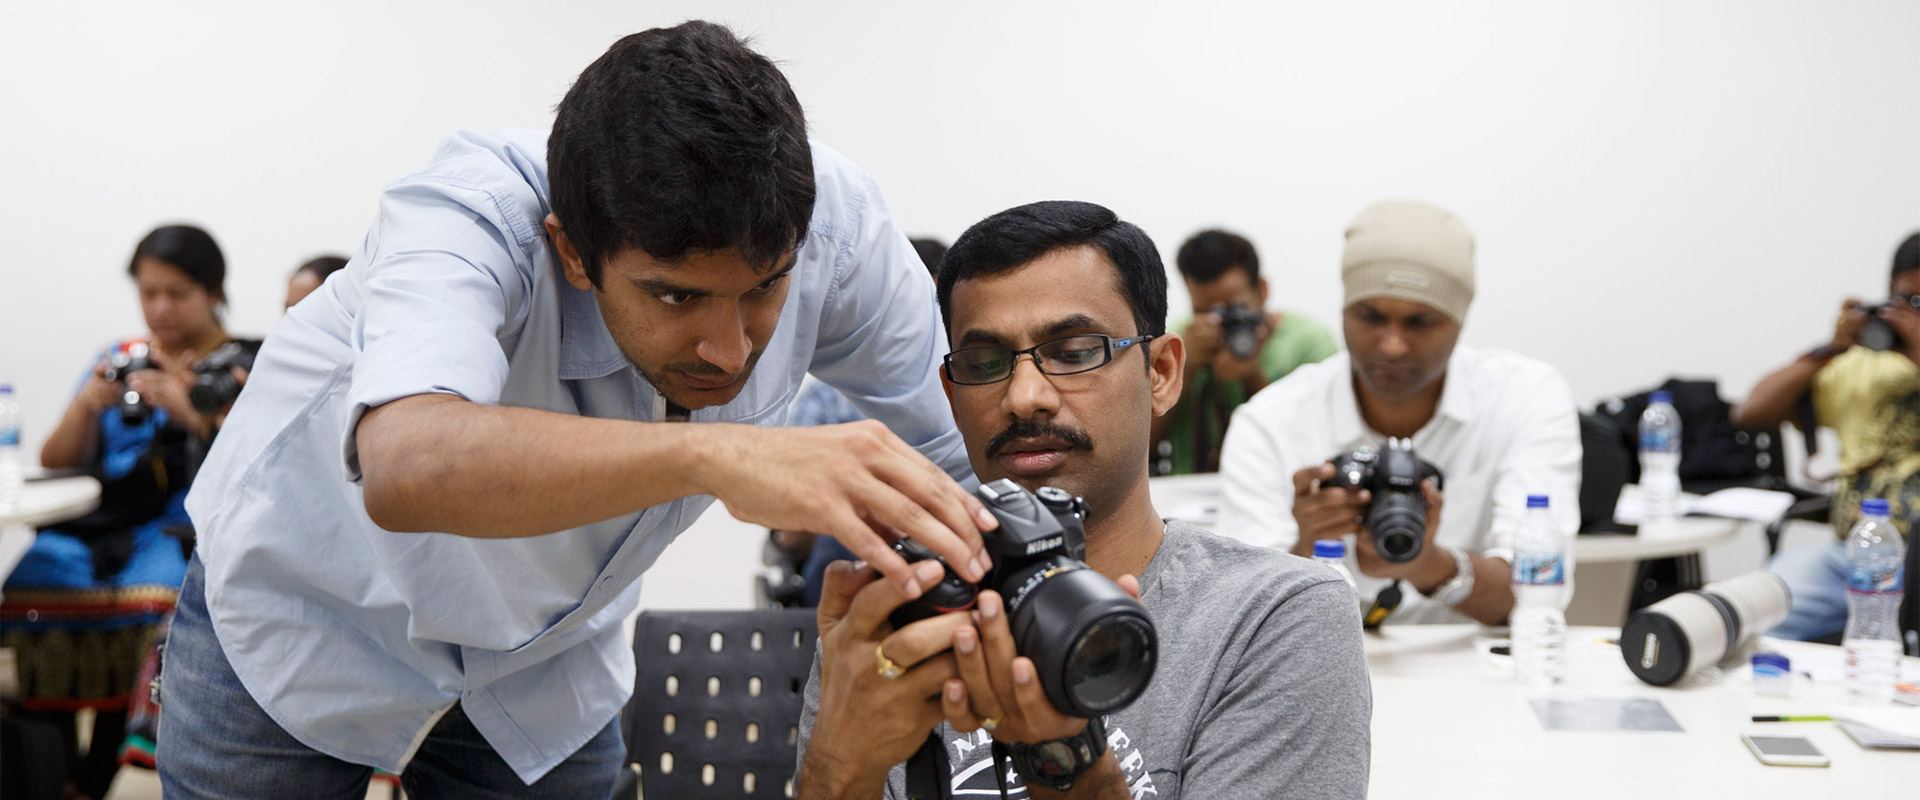 course short photographer term helps guide hamstech courses training professional